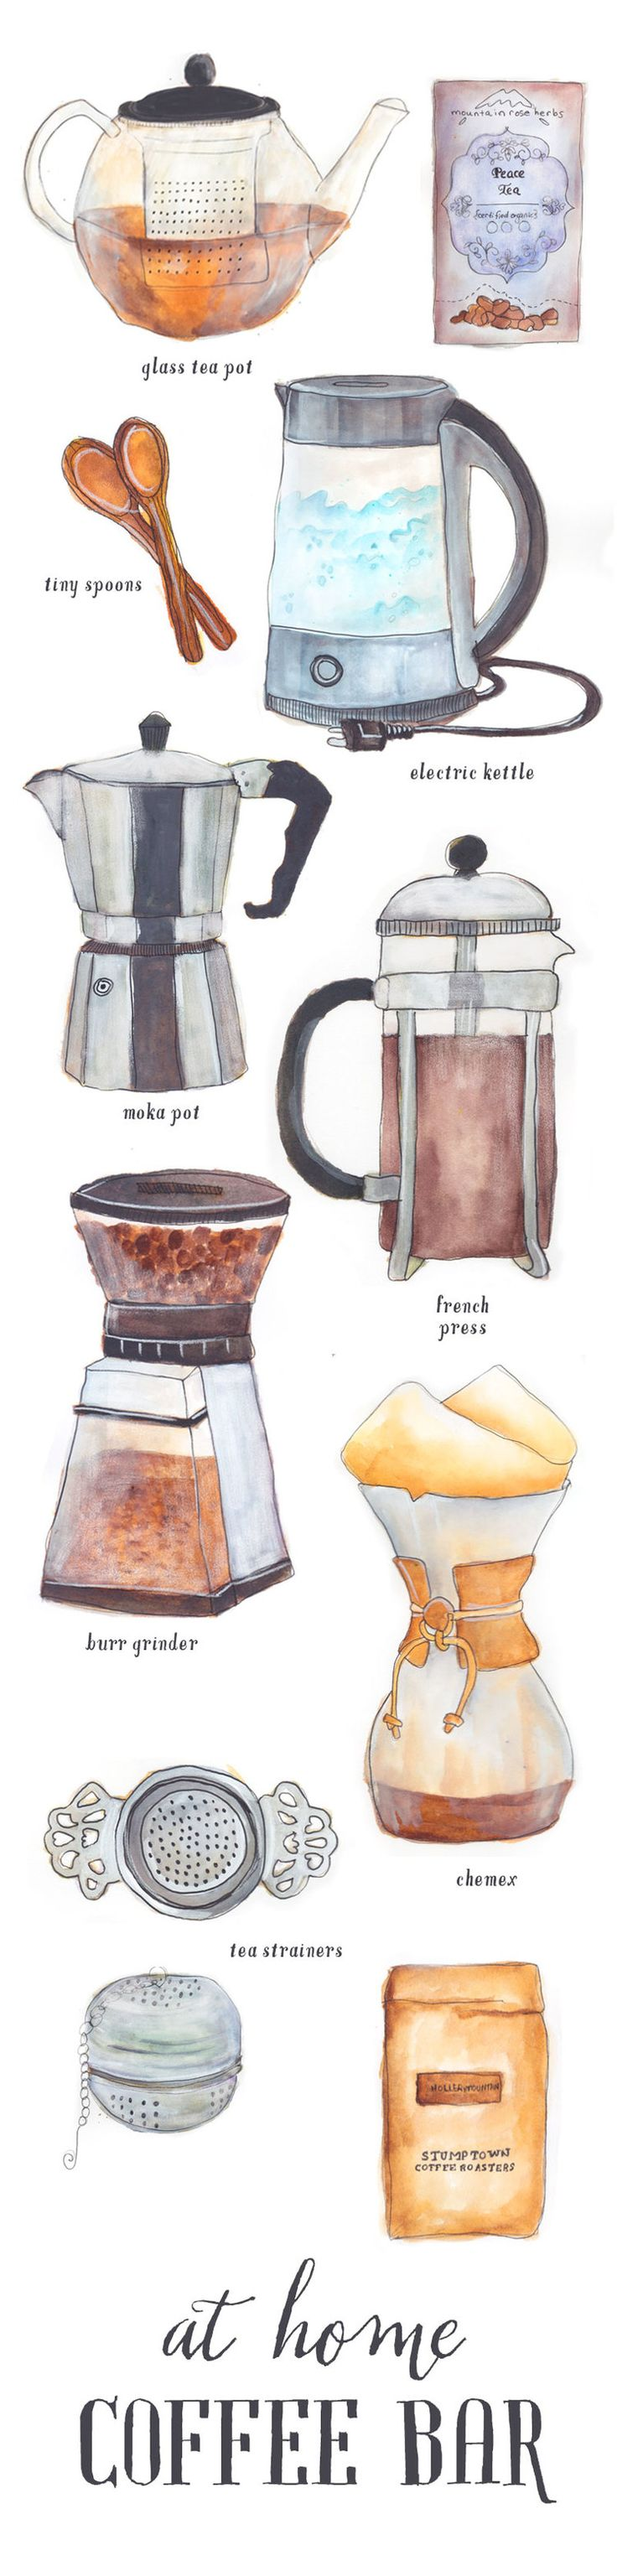 10 essential items for your at home coffee bar — Very Sarie: